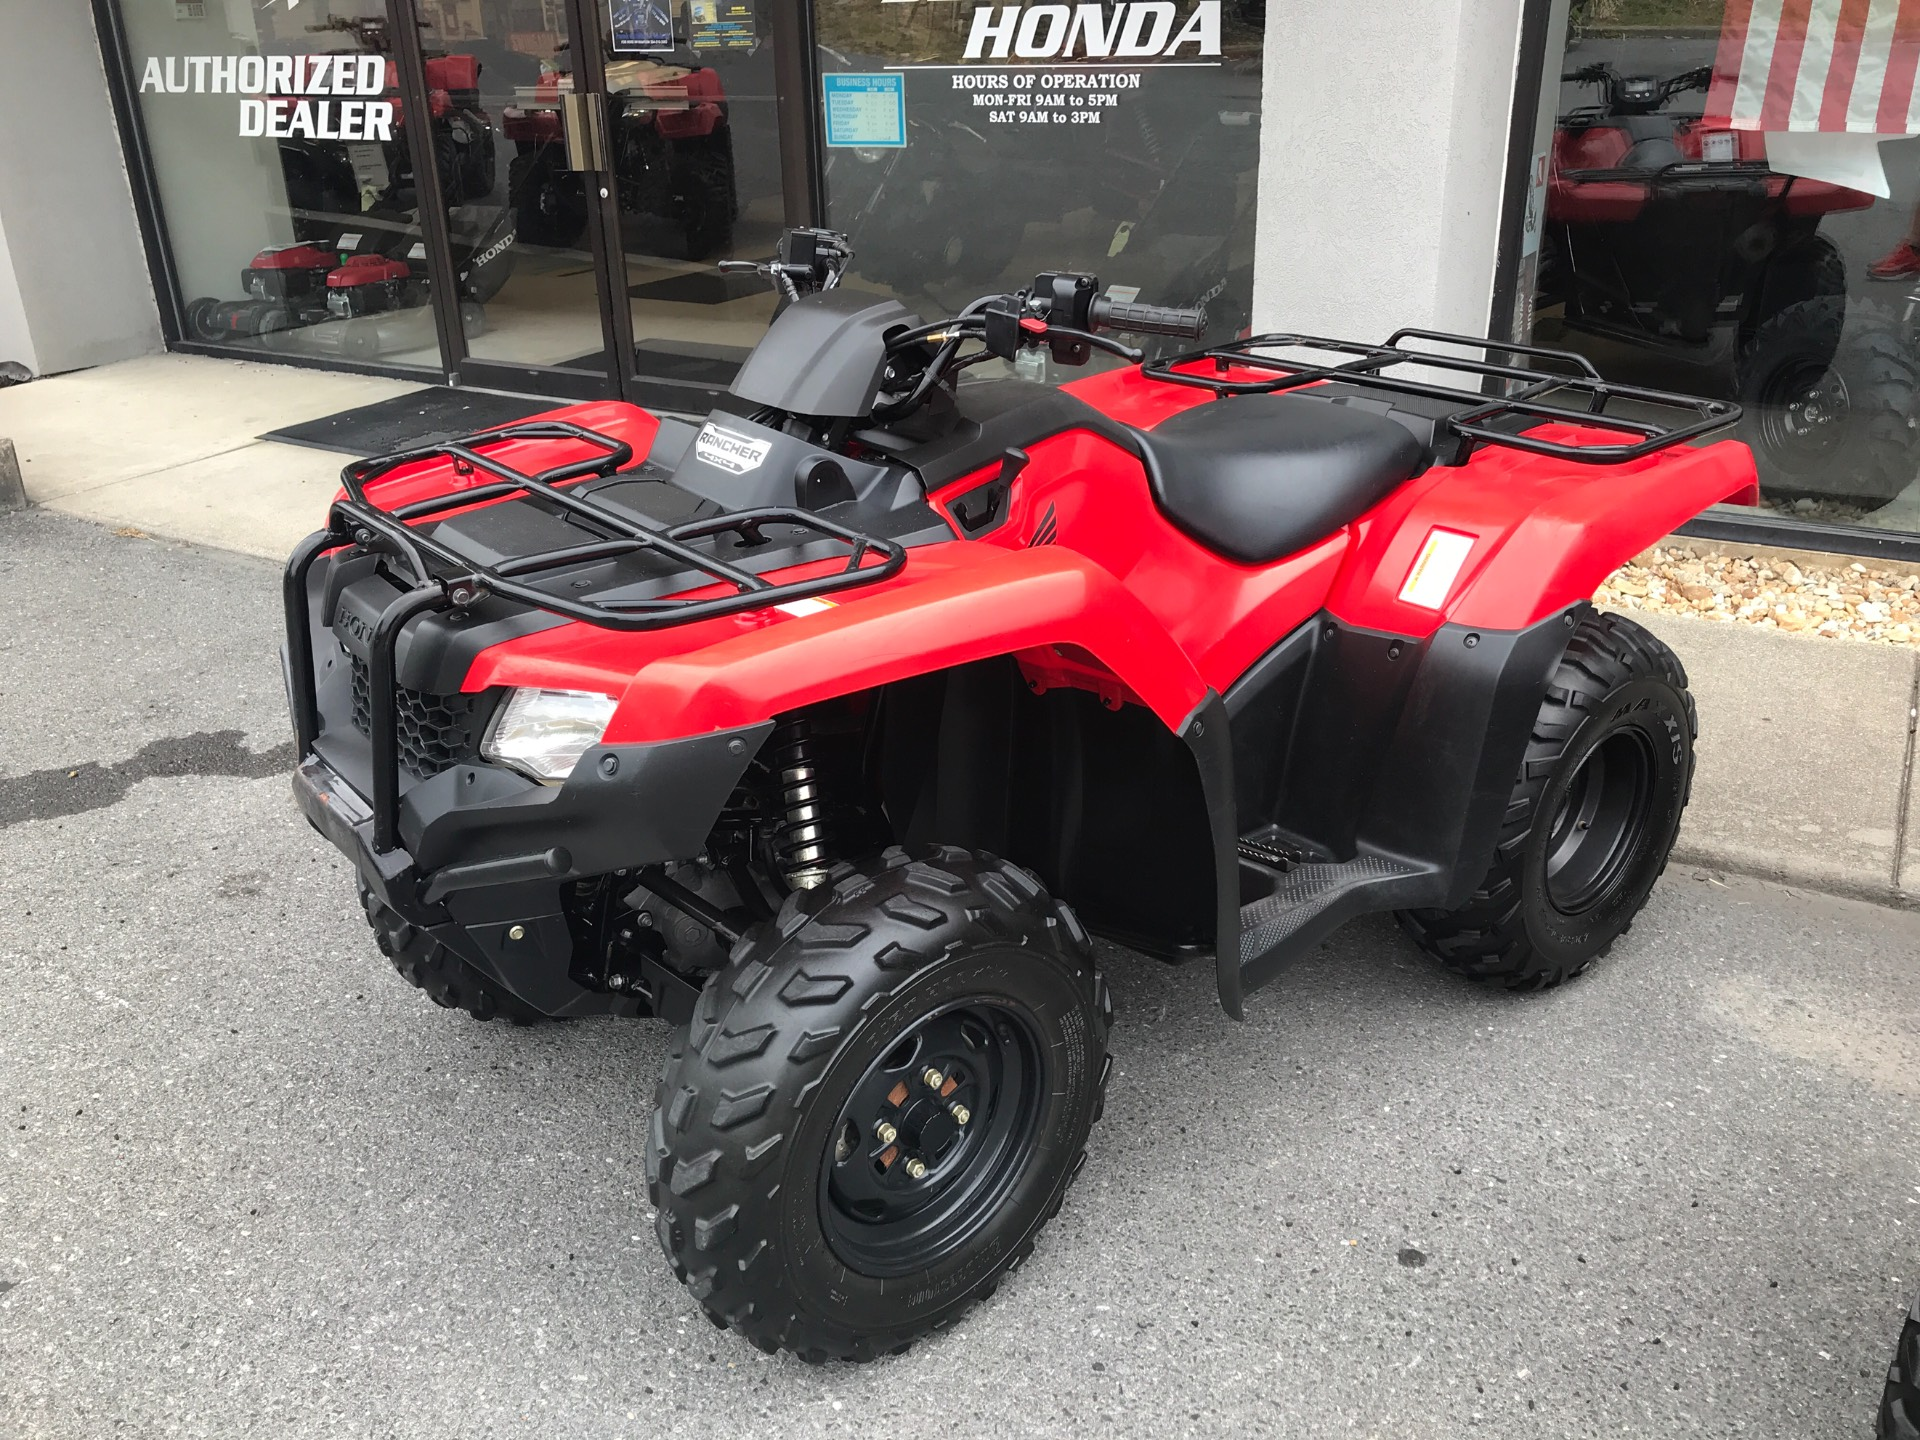 2017 Honda FourTrax Rancher 4x4 ES in Beckley, West Virginia - Photo 2